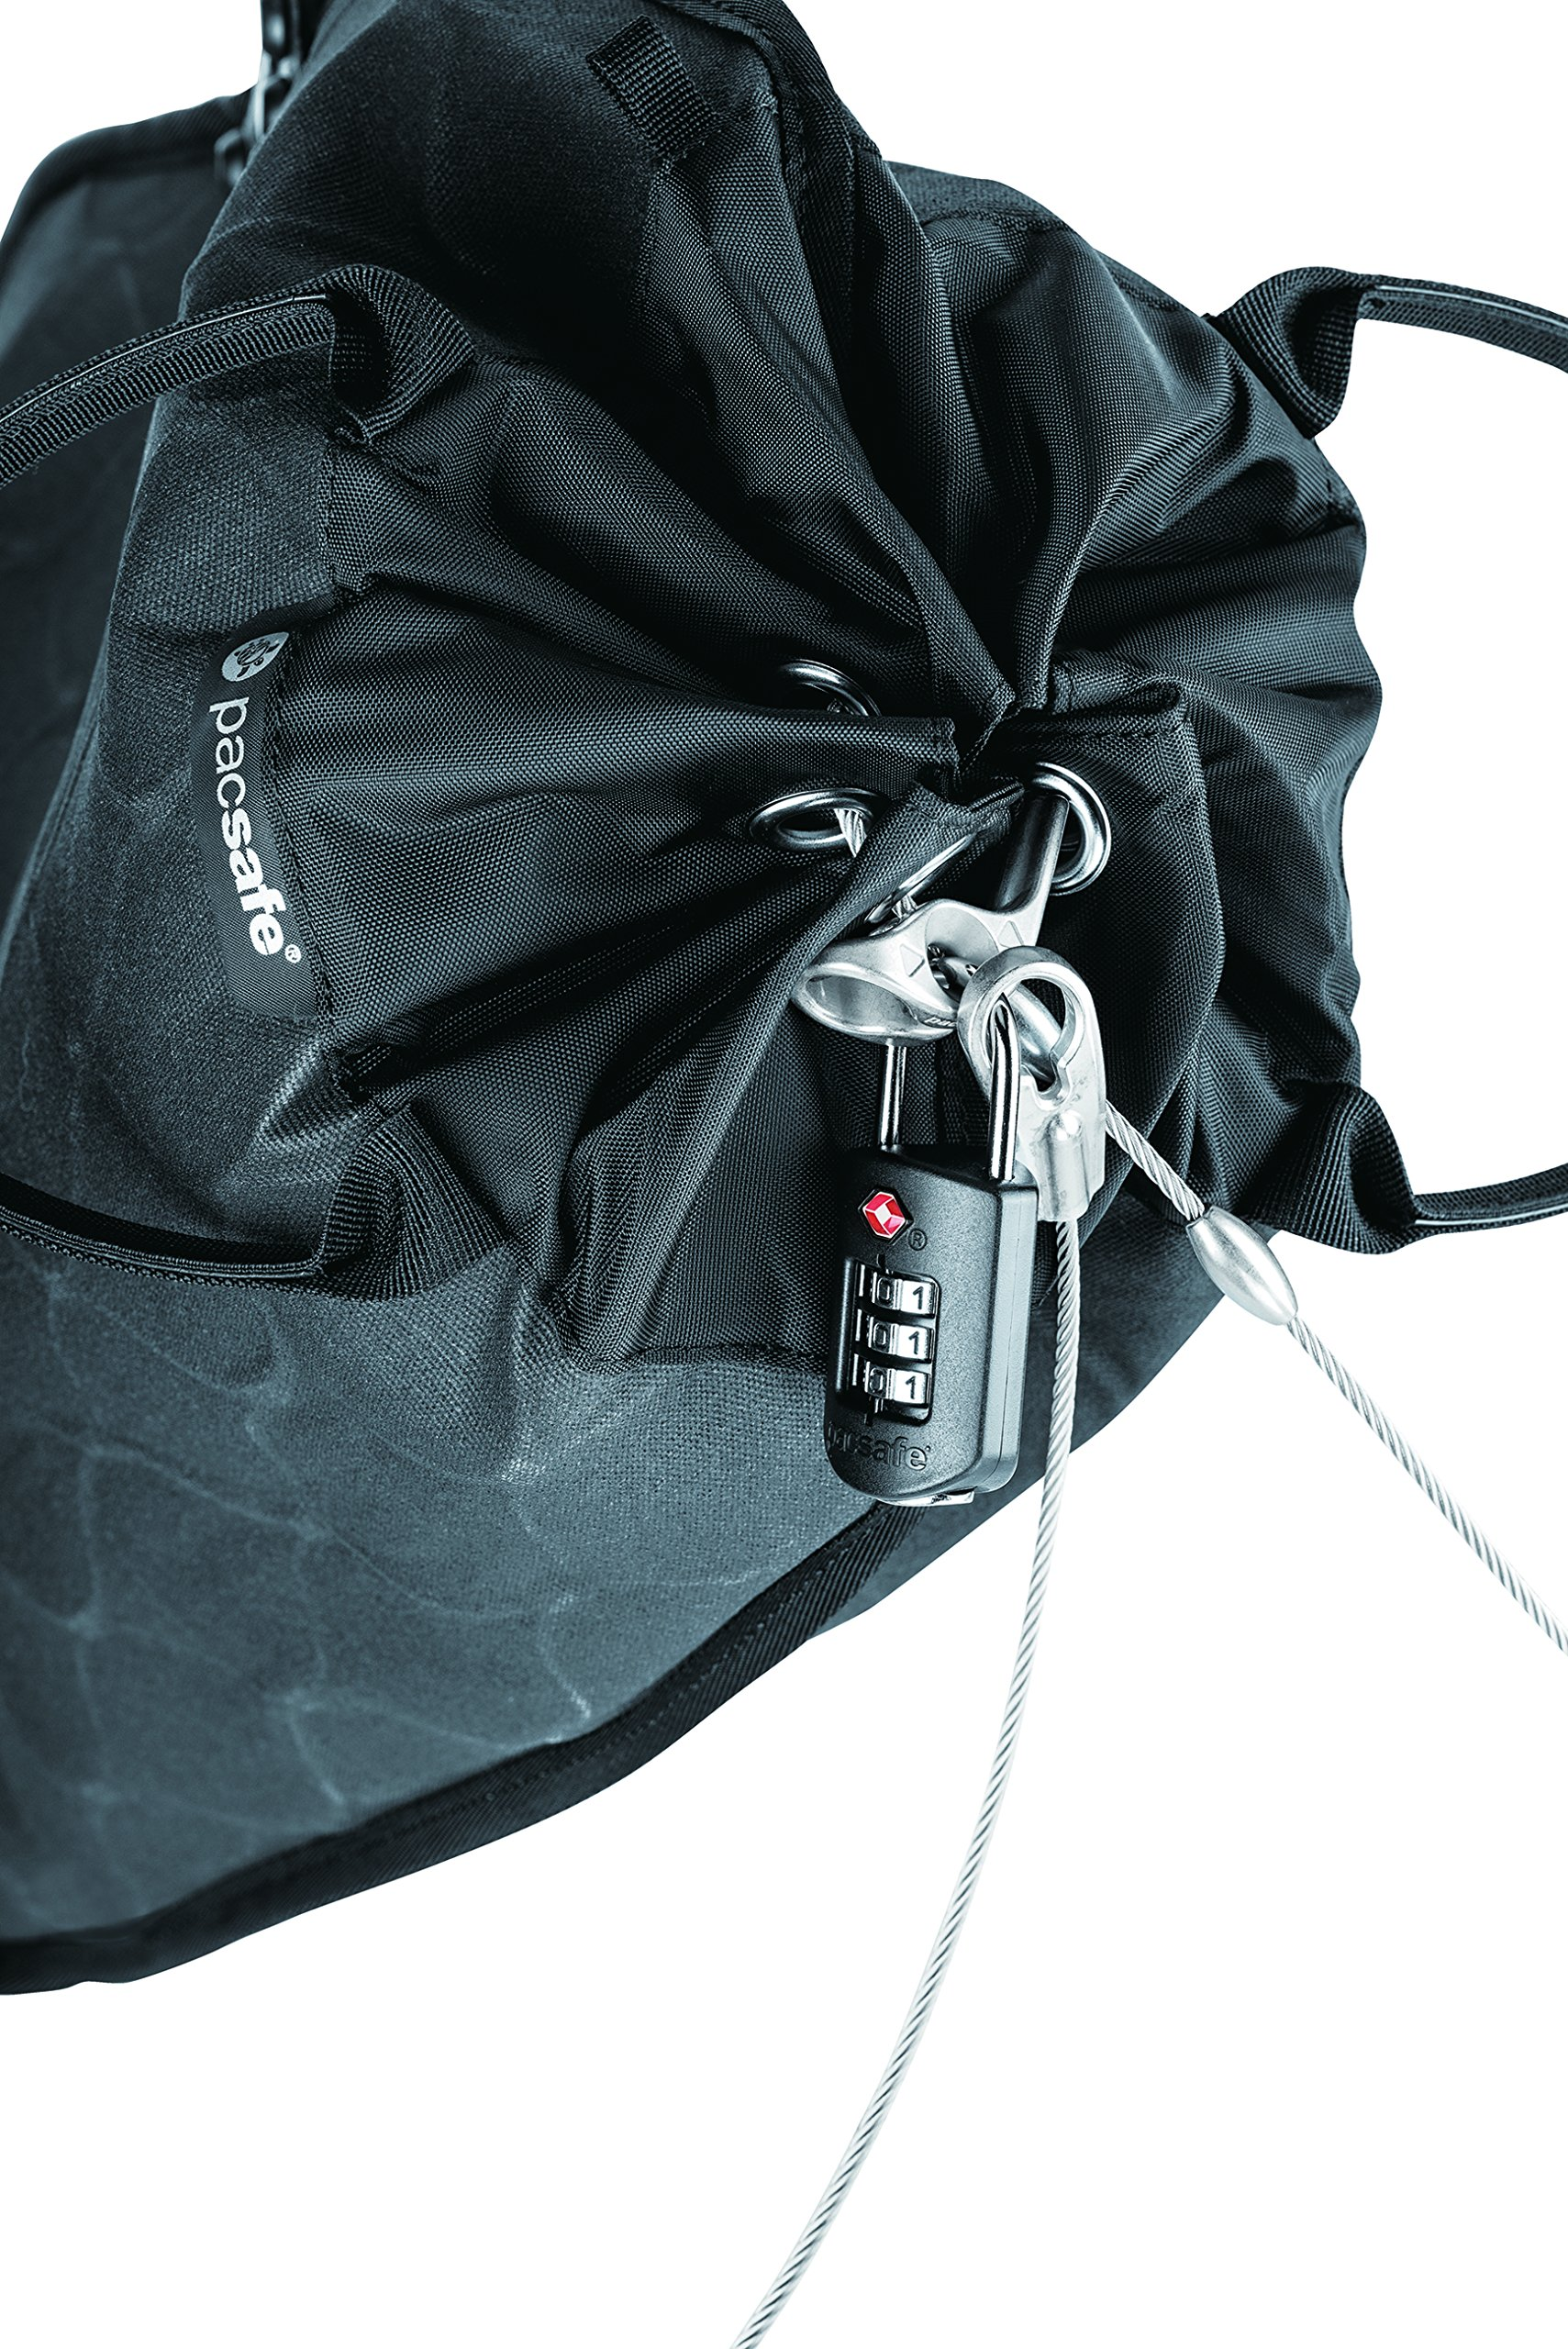 Pacsafe Travelsafe 12L GII Portable Safe, Charcoal by Pacsafe (Image #4)